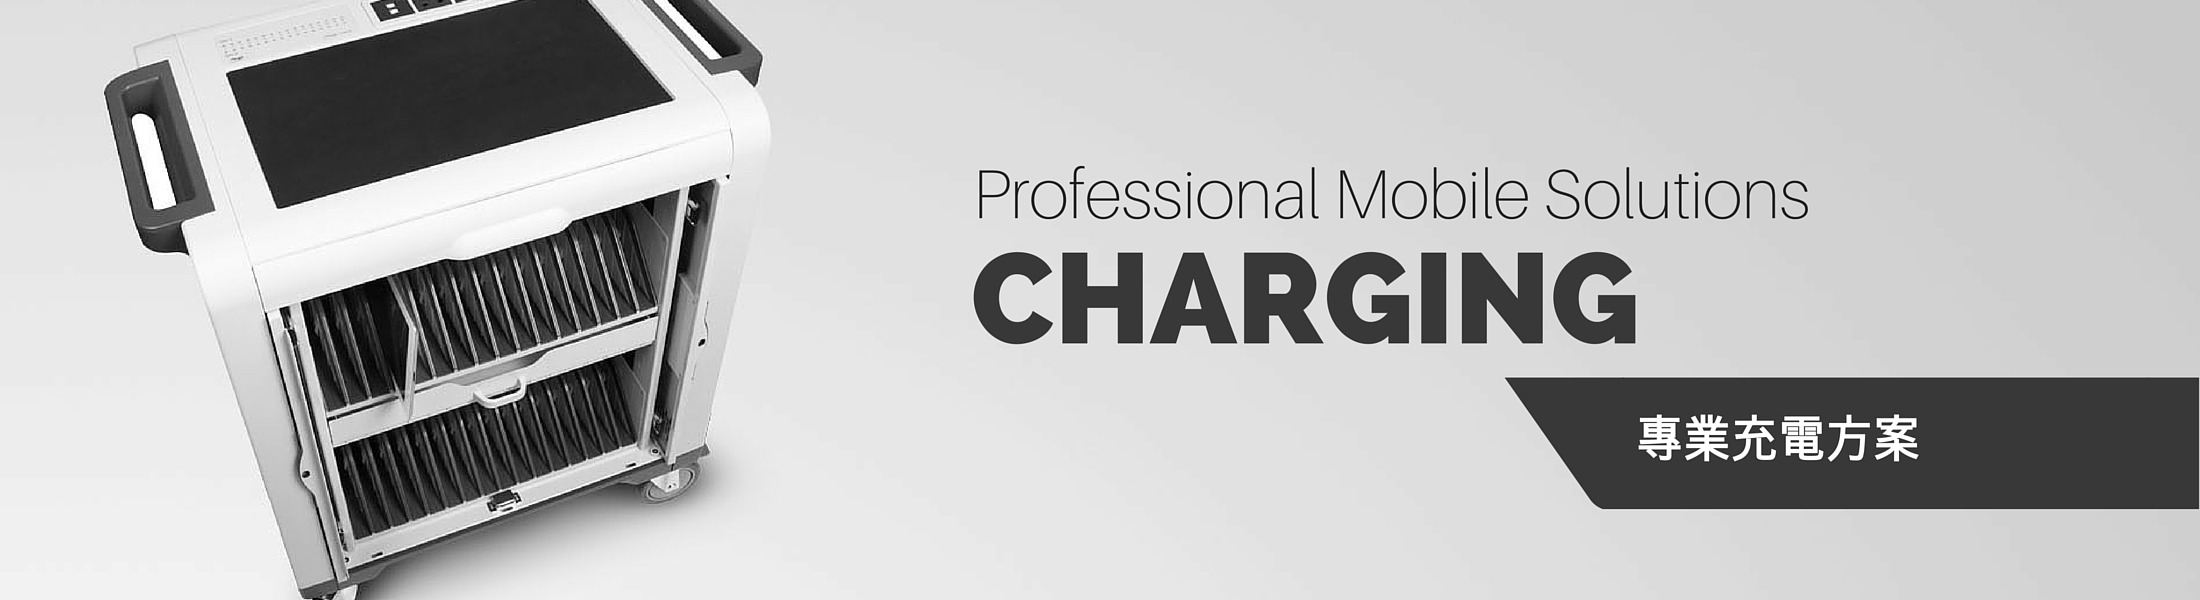 Pro_Charging_Banner